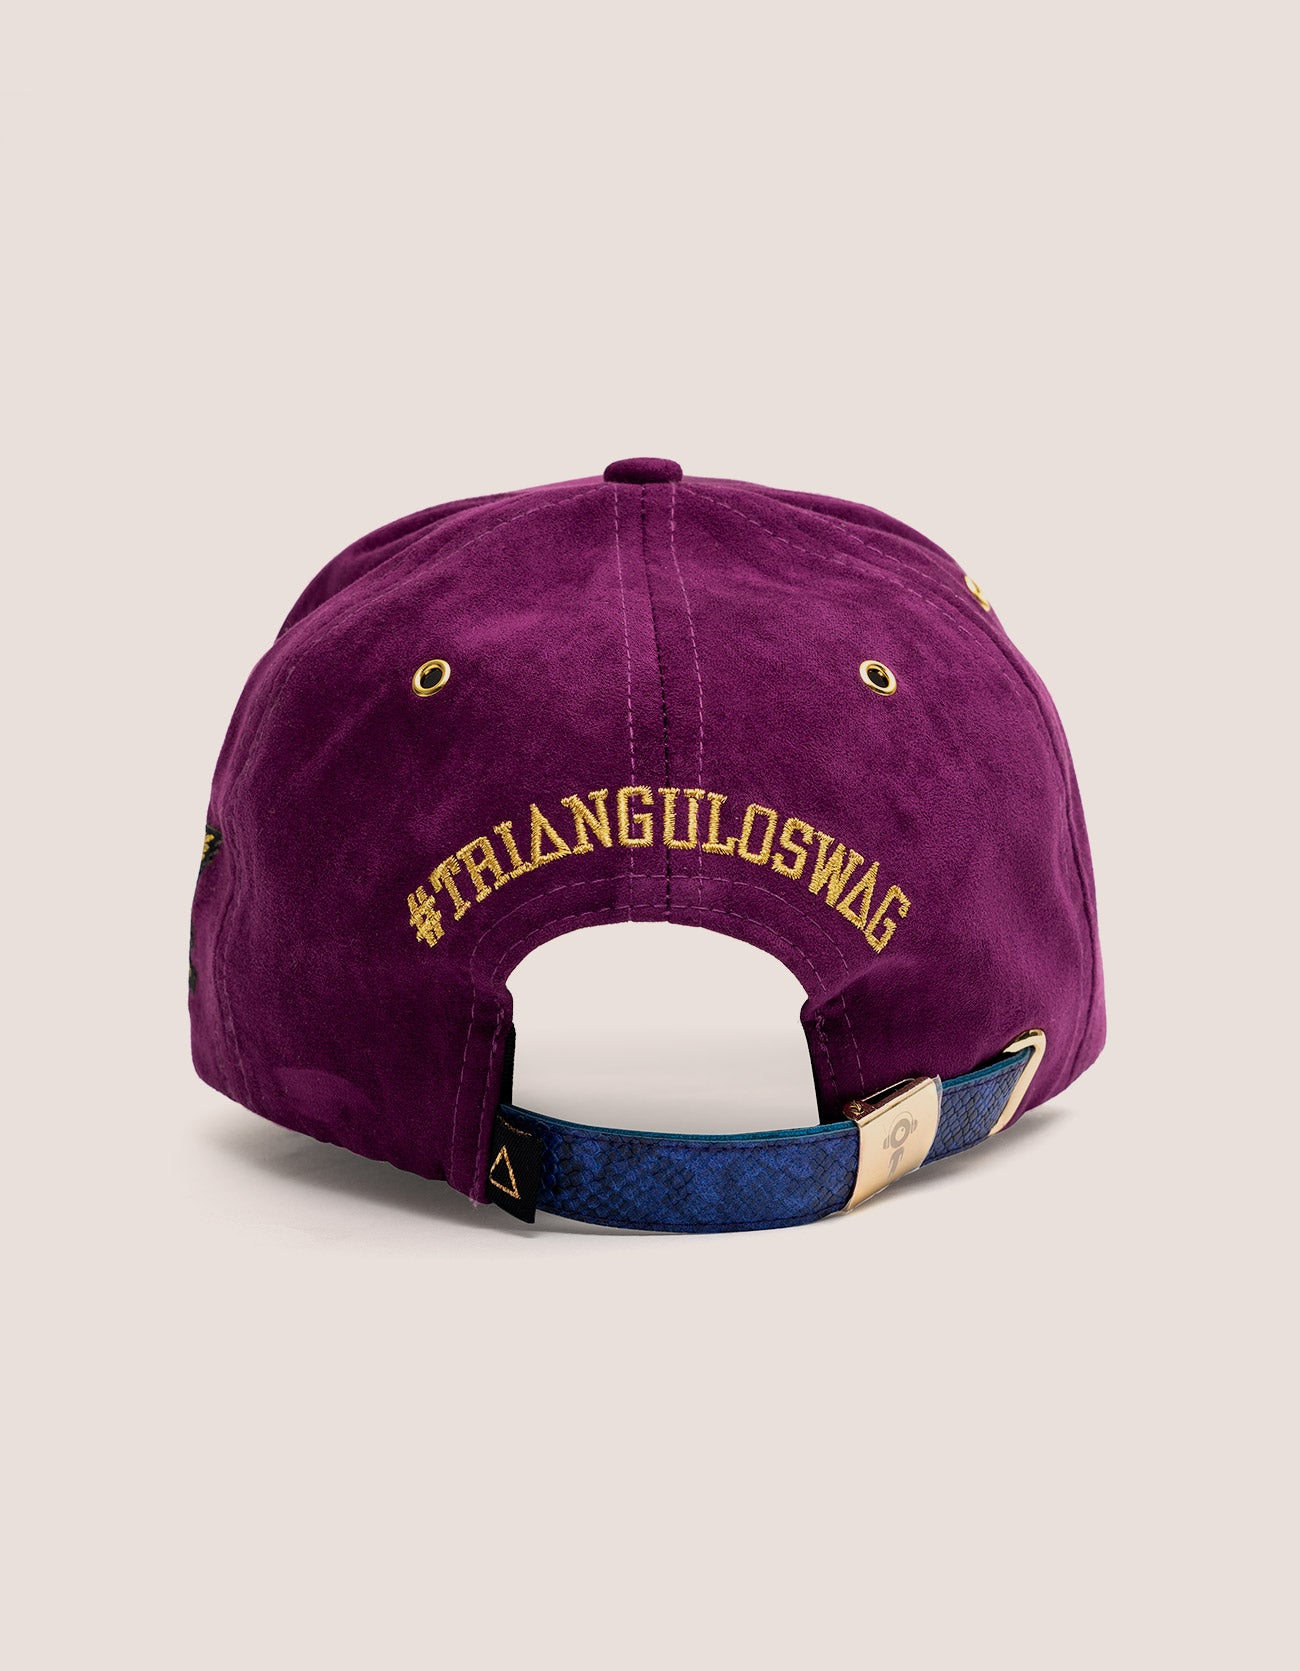 TRI X KILLA Suede PURPLE Baseball Hat